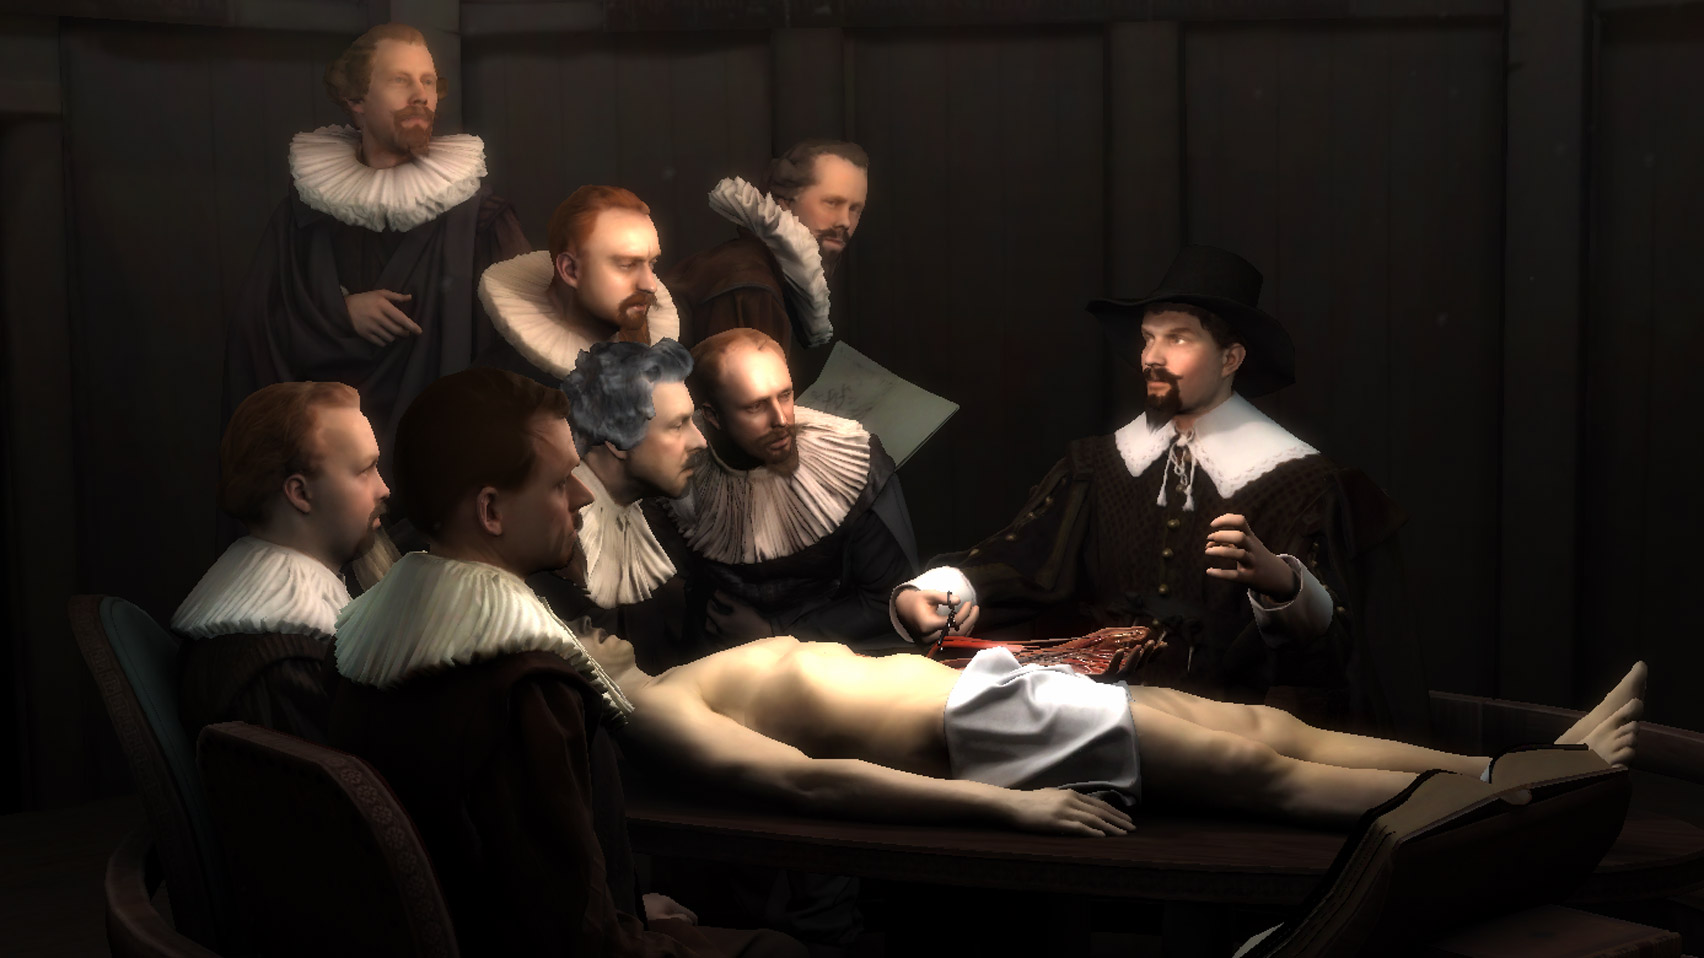 Augmented reality takes Mauritshuis museum-goers inside Rembrandt